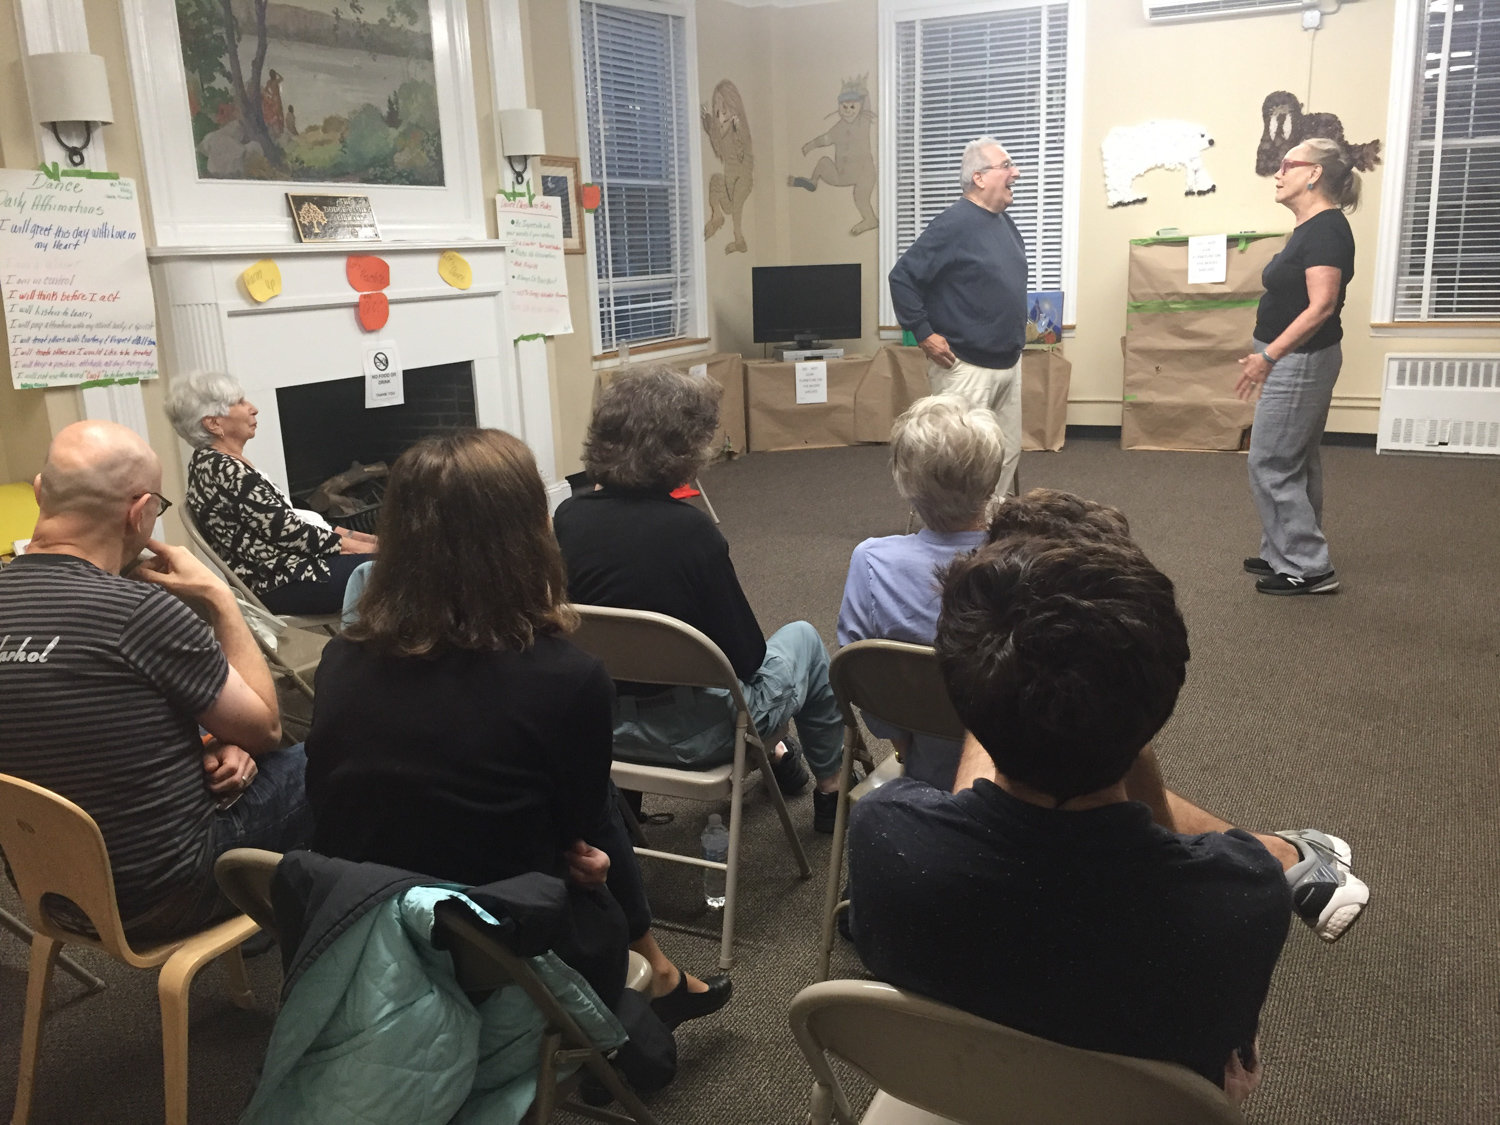 People looking to get their fix of acting and comedy created on the spot should find their way to Riverdale Neighborhood House on Mosholu Avenue, where an improv theatre workshop returns this week.